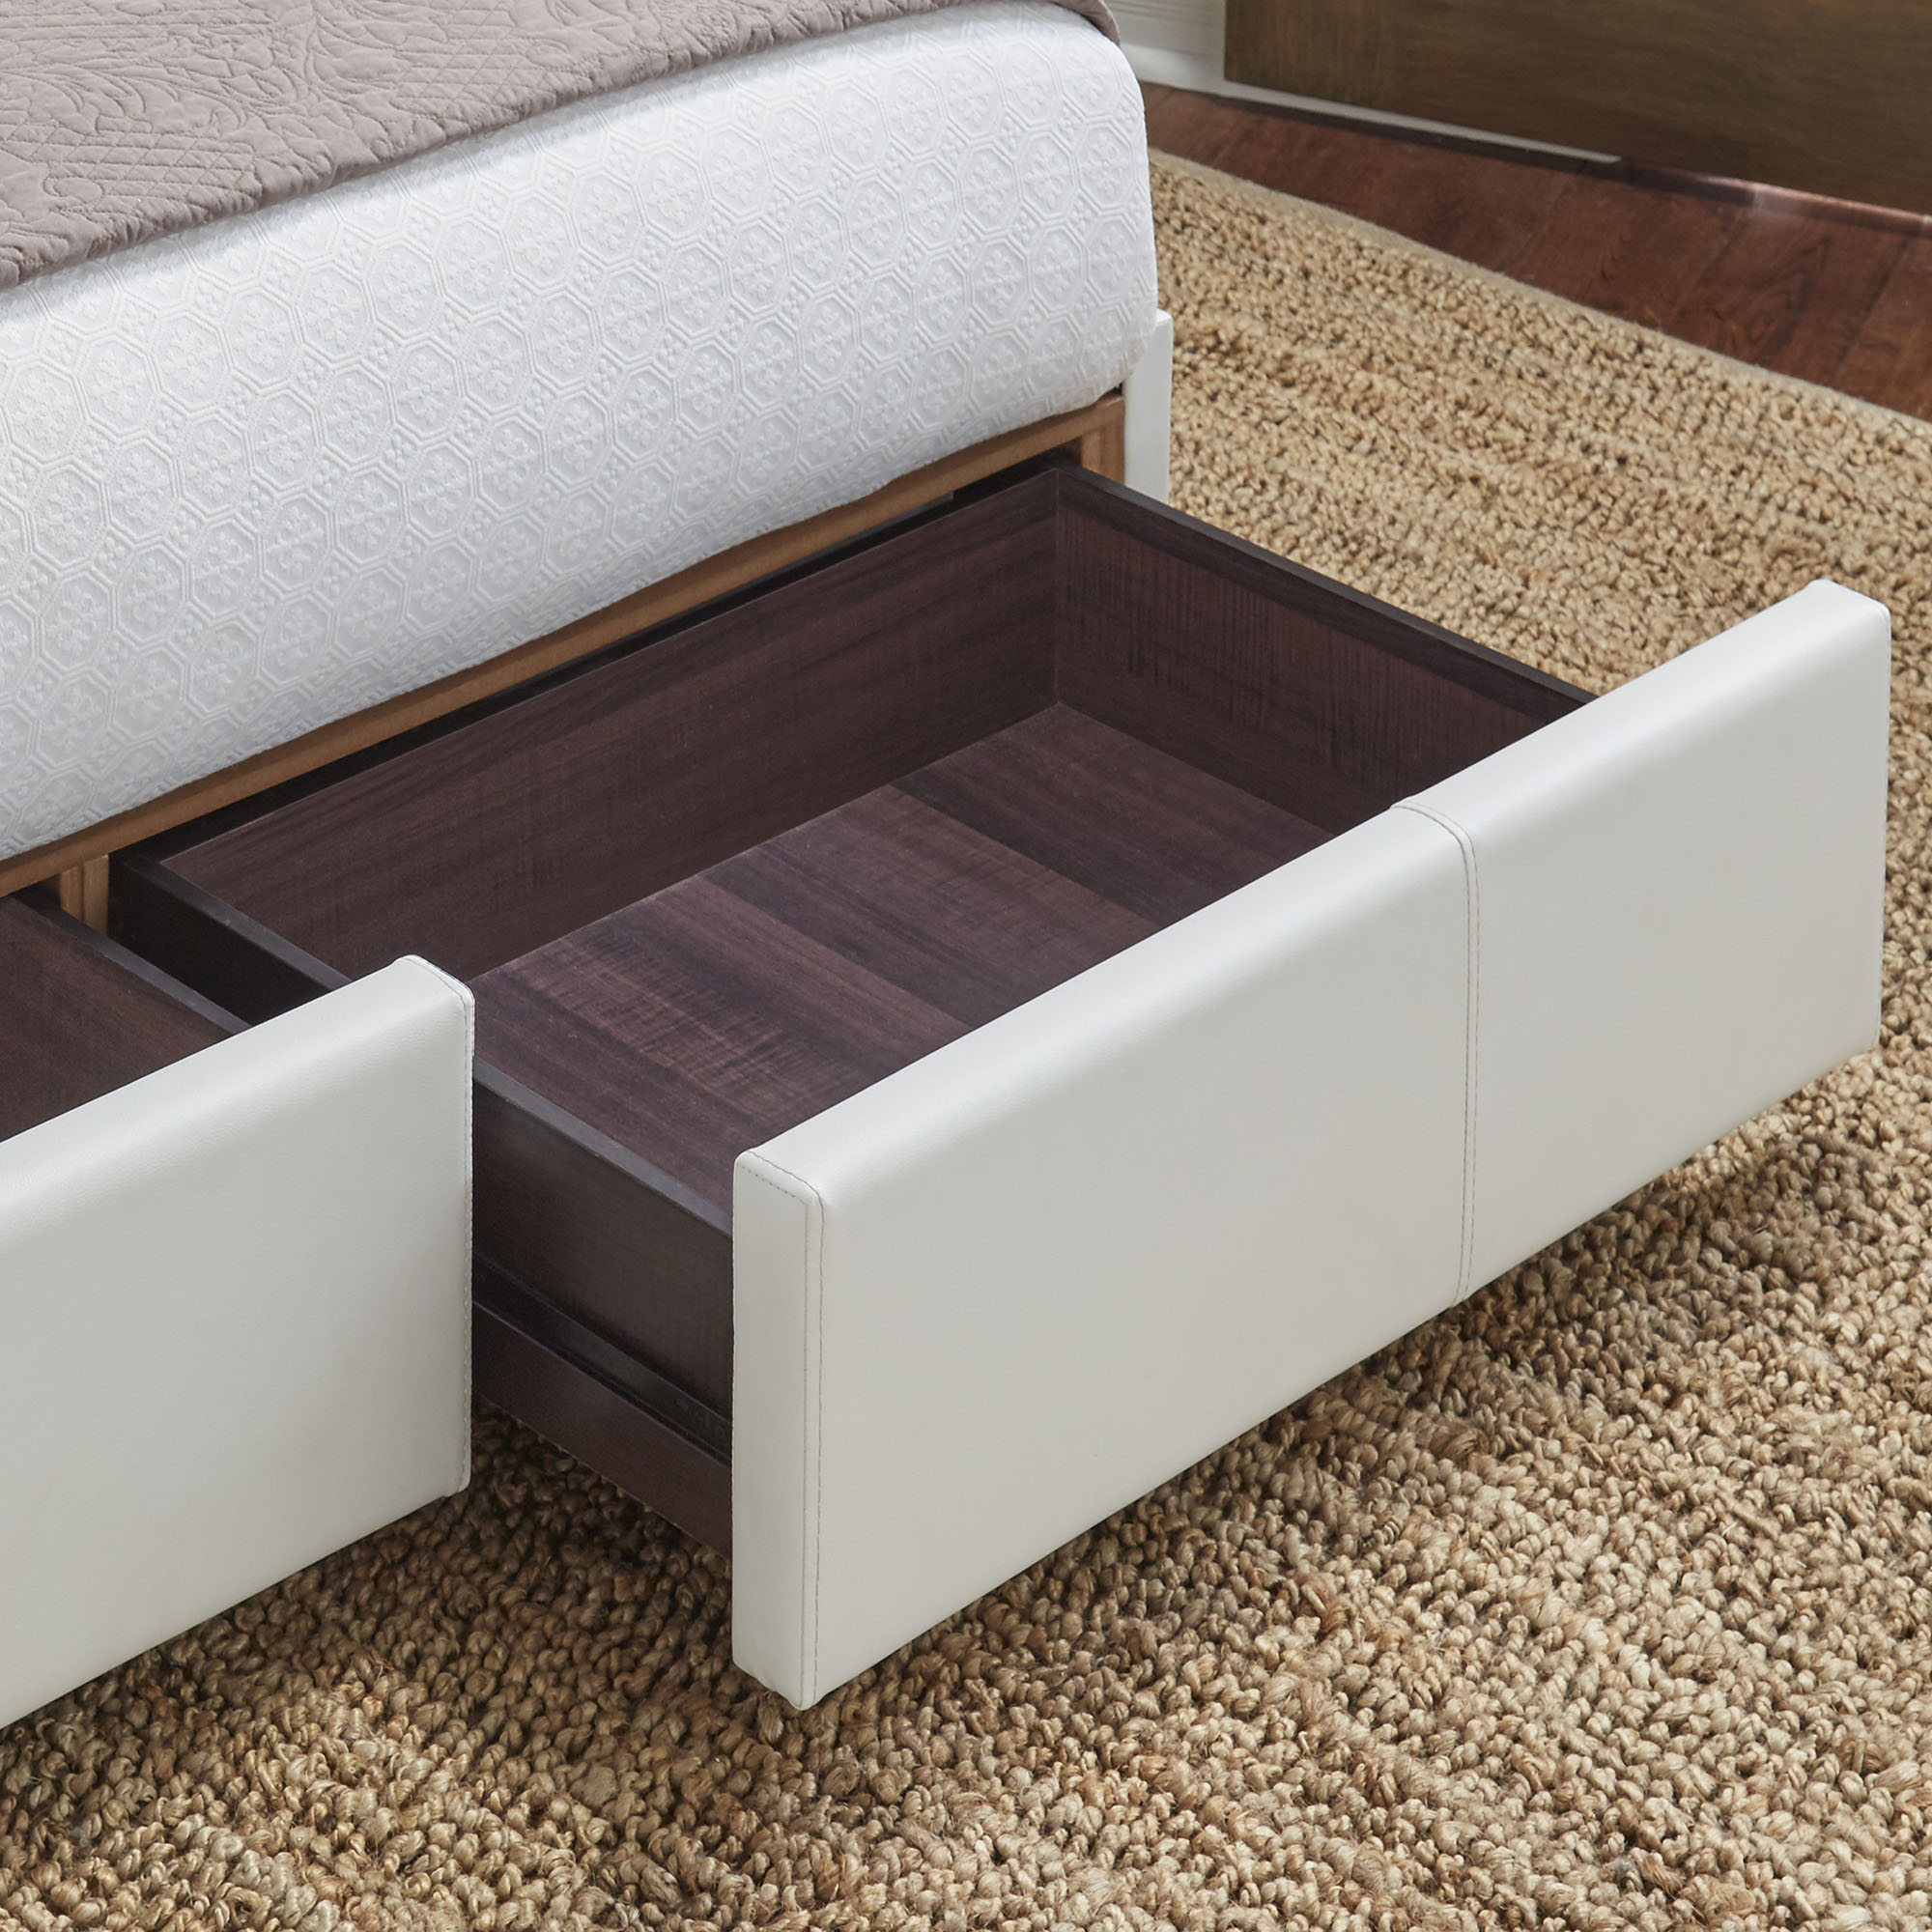 Incroyable B71316 In By Fashion Bed Group In Dickson, TN   Delaney Storage Bed With  Faux Leather Upholstered Frame And (2) Footboard Drawers, Polar White  Finish, King